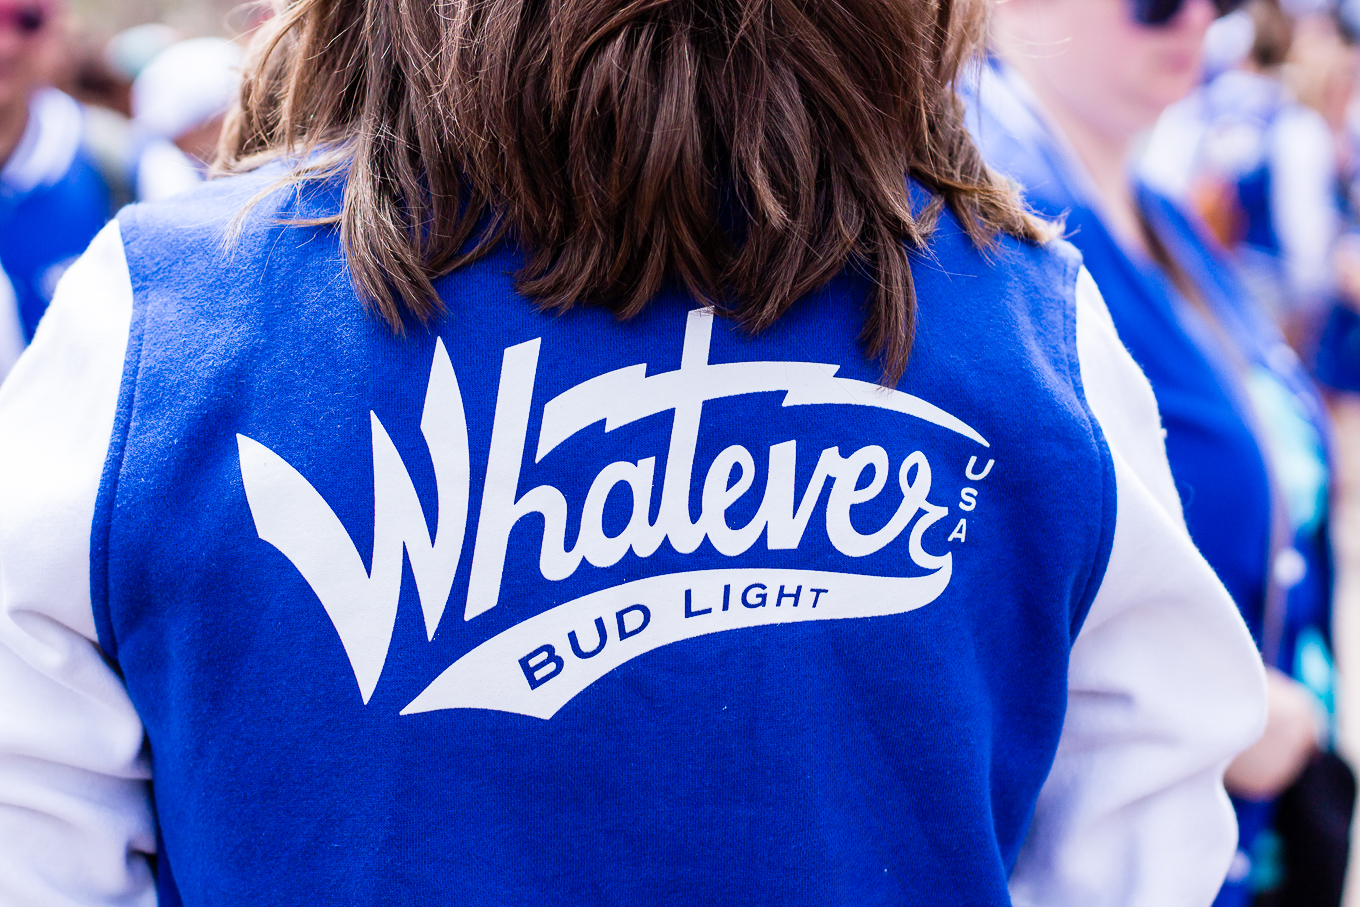 whatever usa, bud light, #drinkbeer, lets grab a beer, anheuser busch